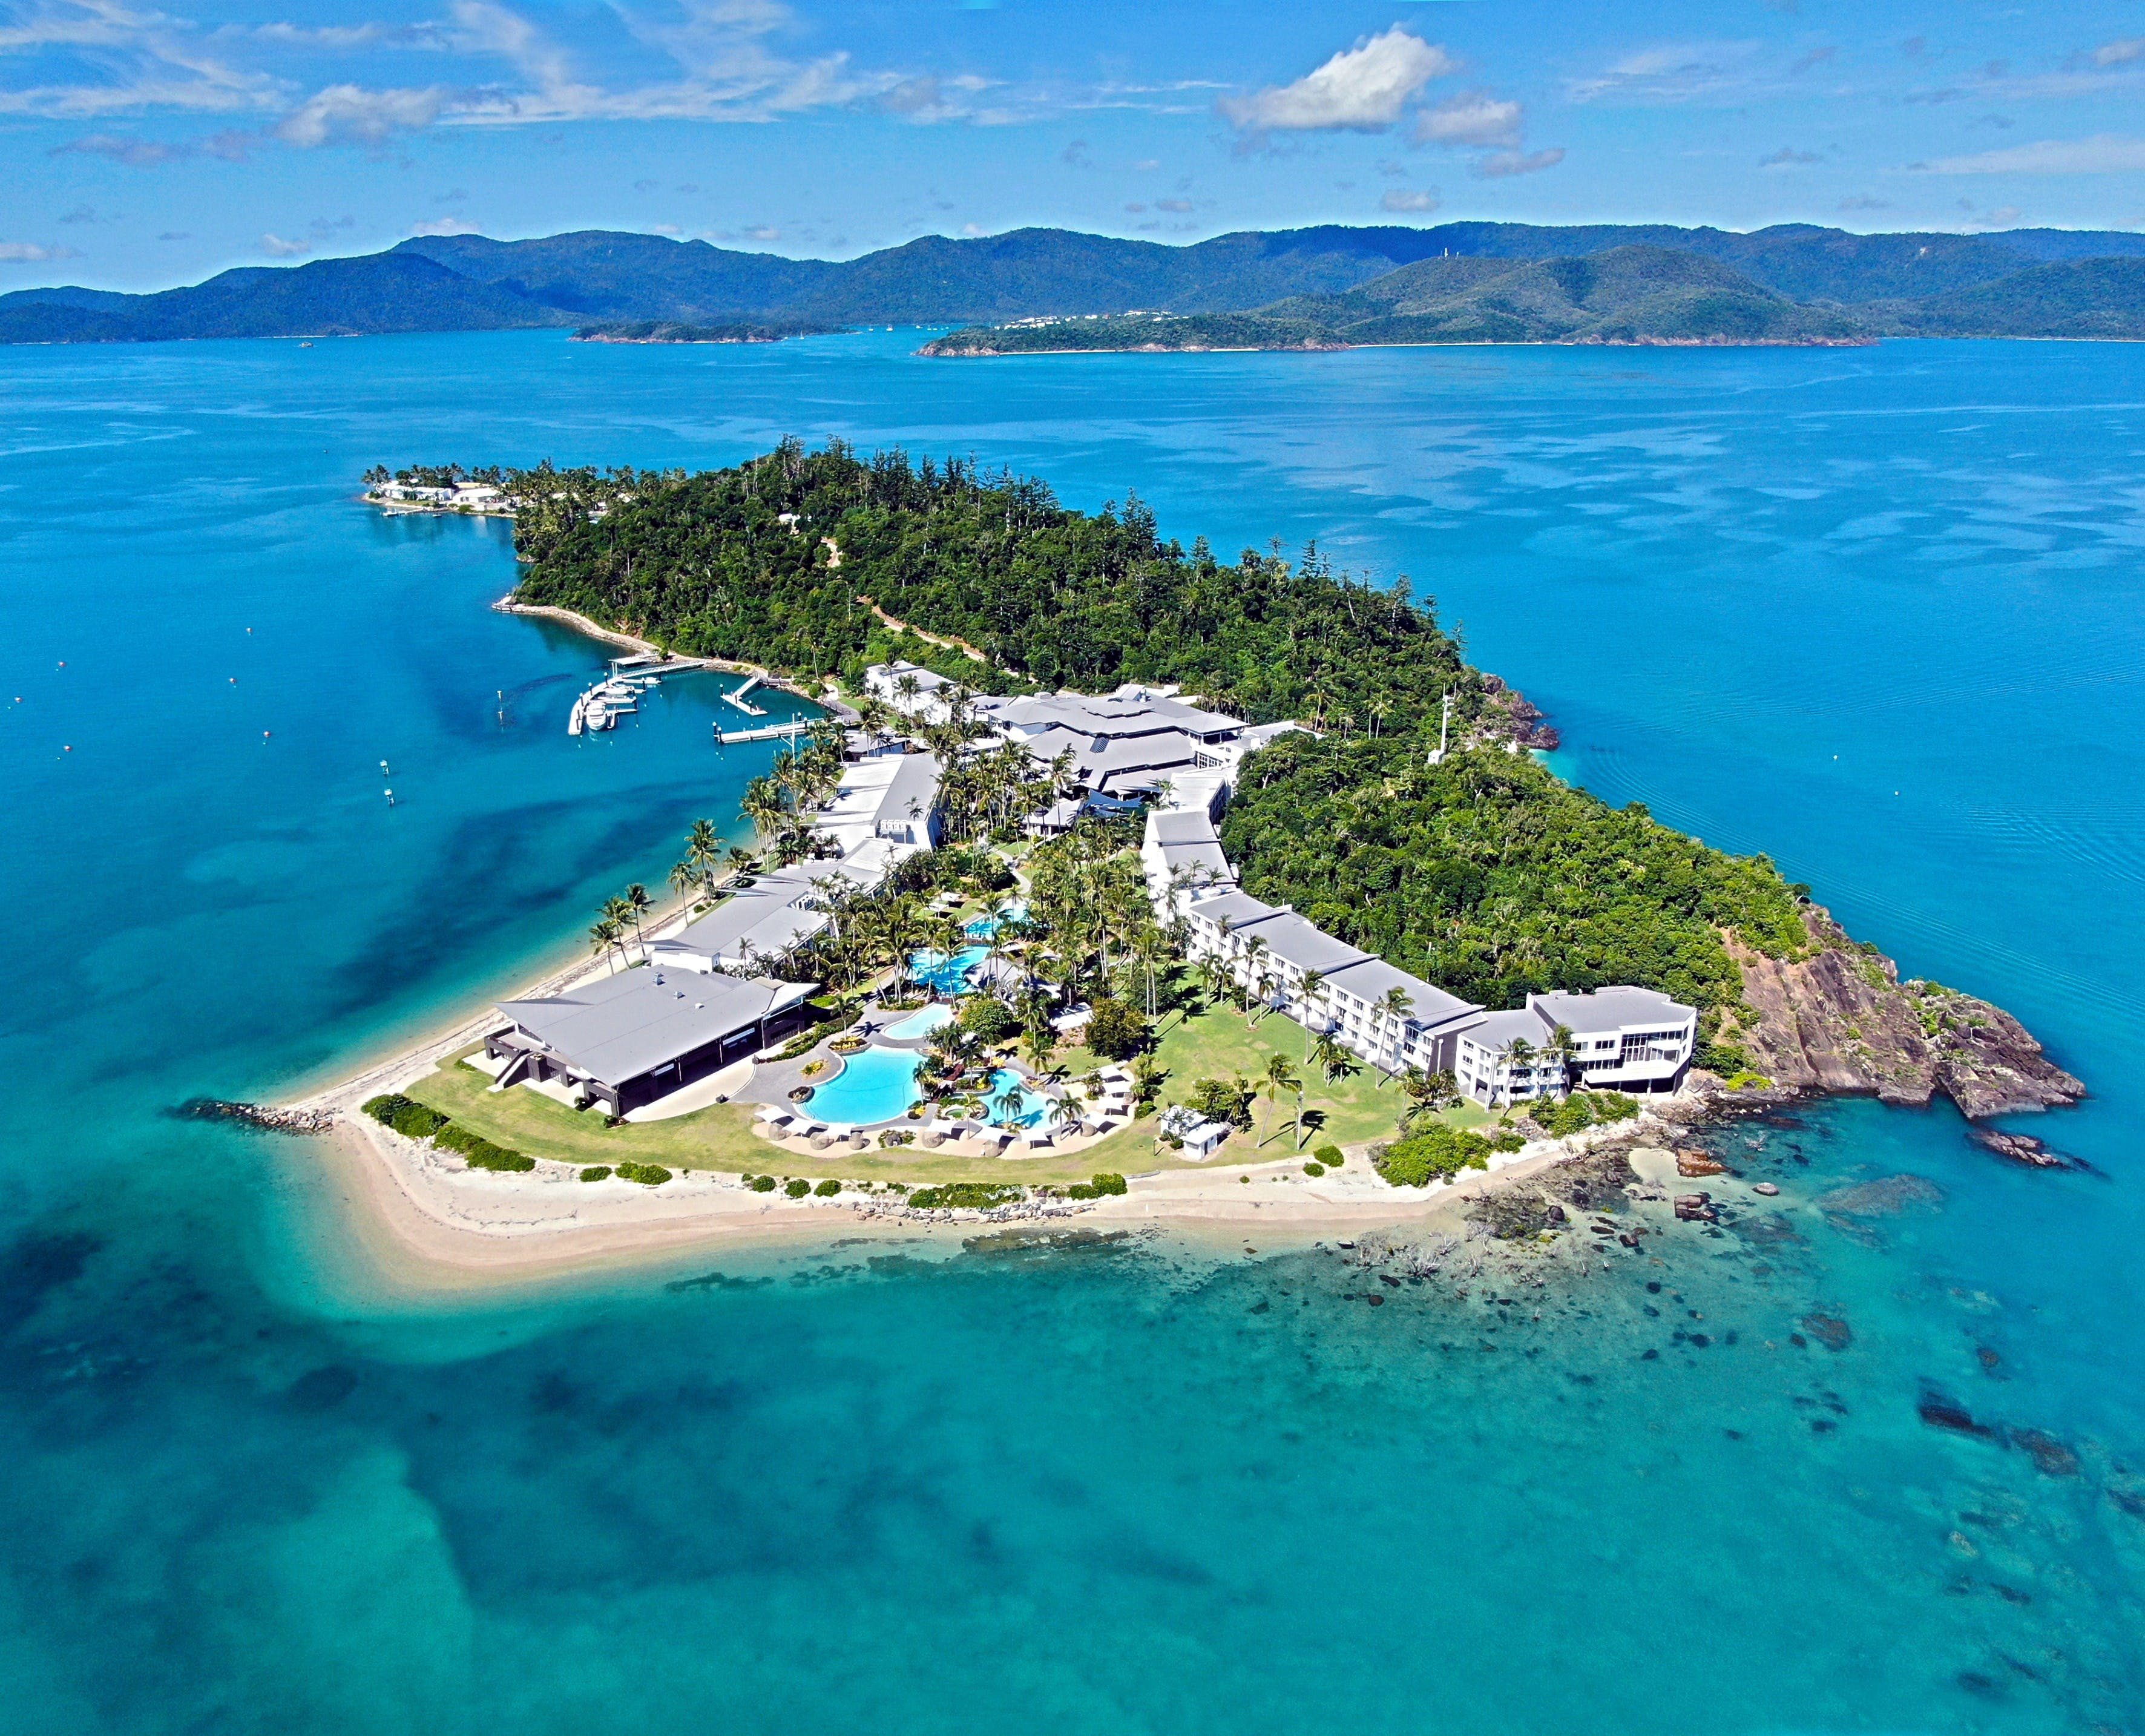 Daydream Island Resort and Living Reef - Accommodation Broken Hill